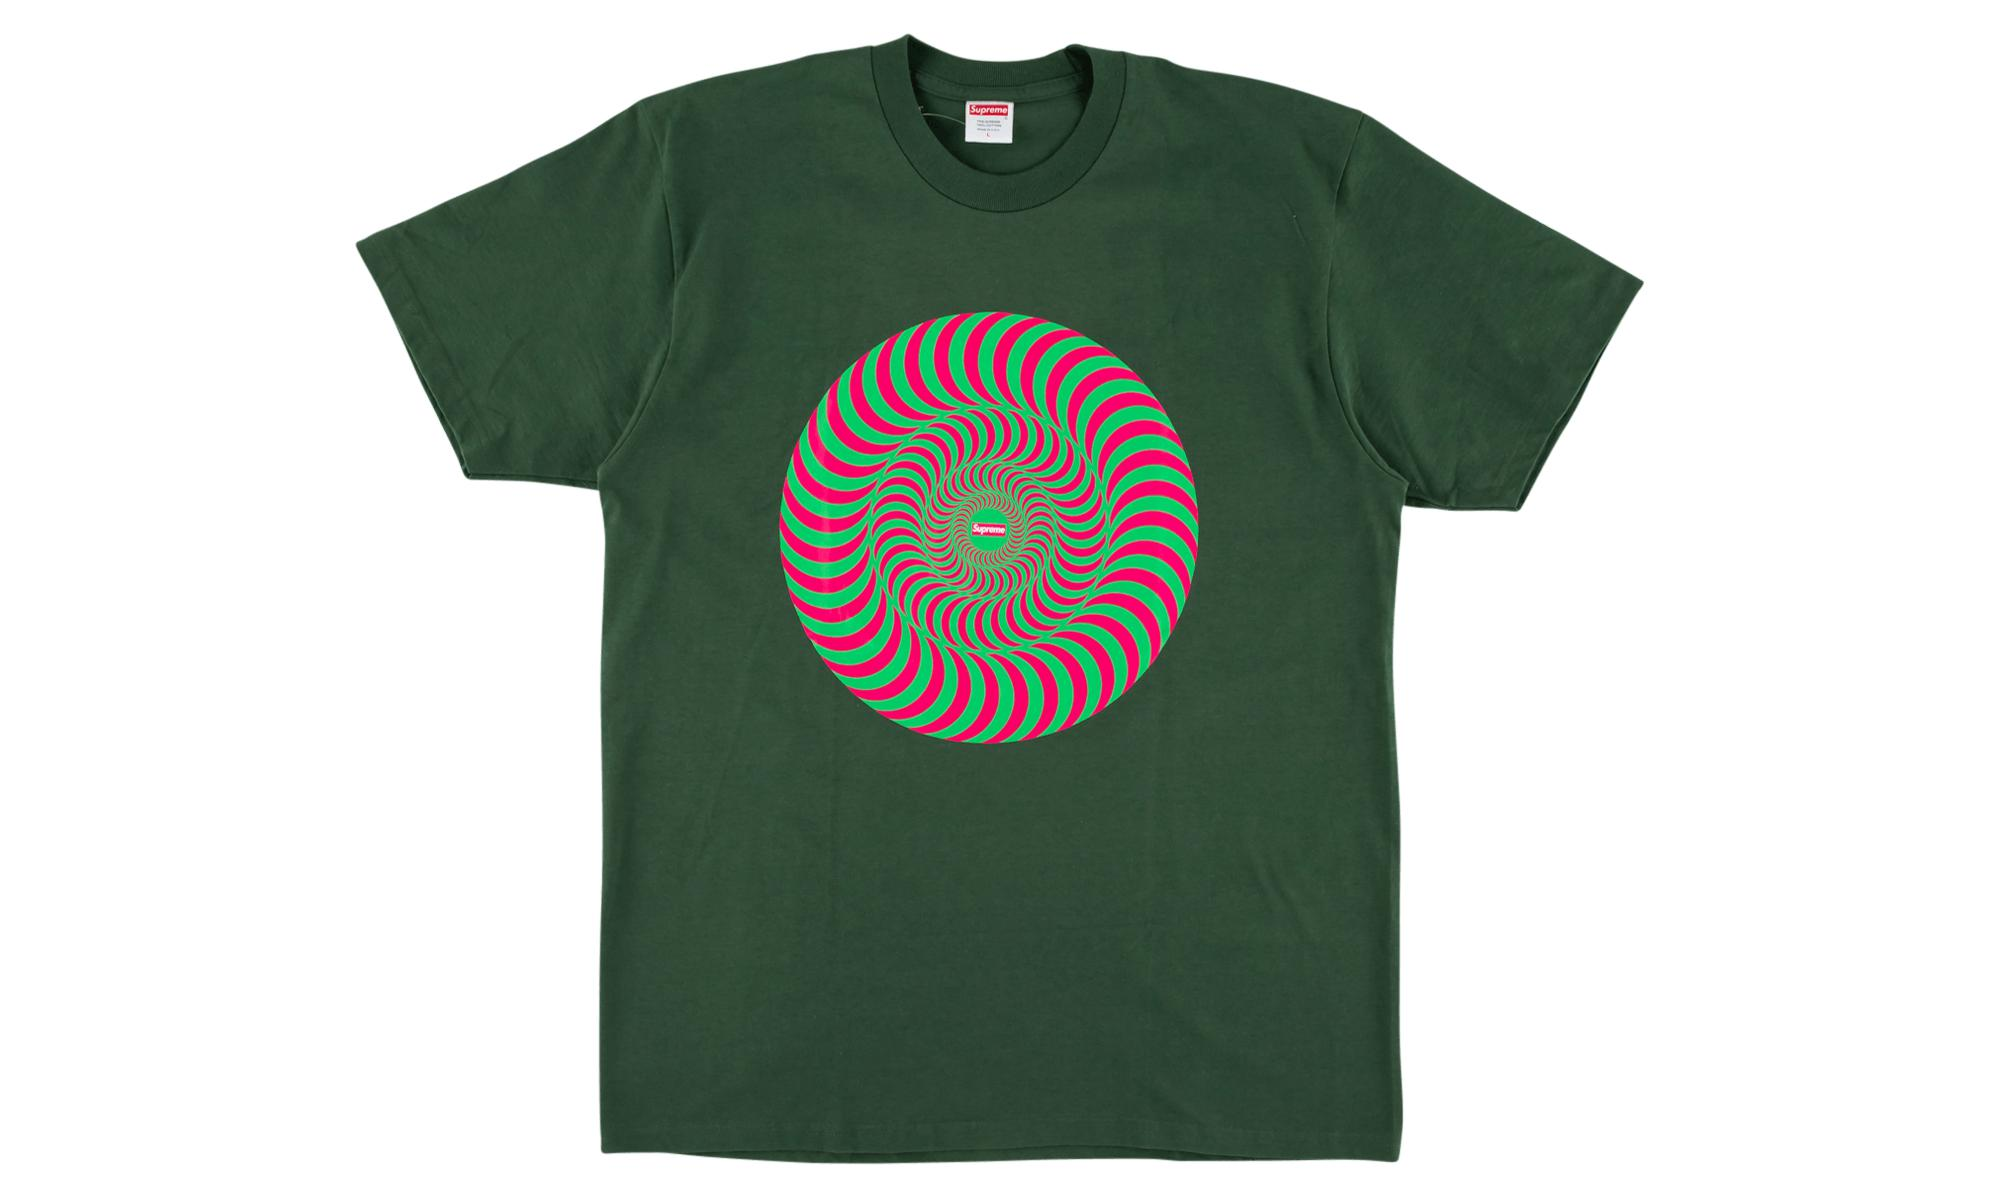 9b6fab07690 Lyst - Supreme Spitfire Classic Swirl Tee in Green for Men